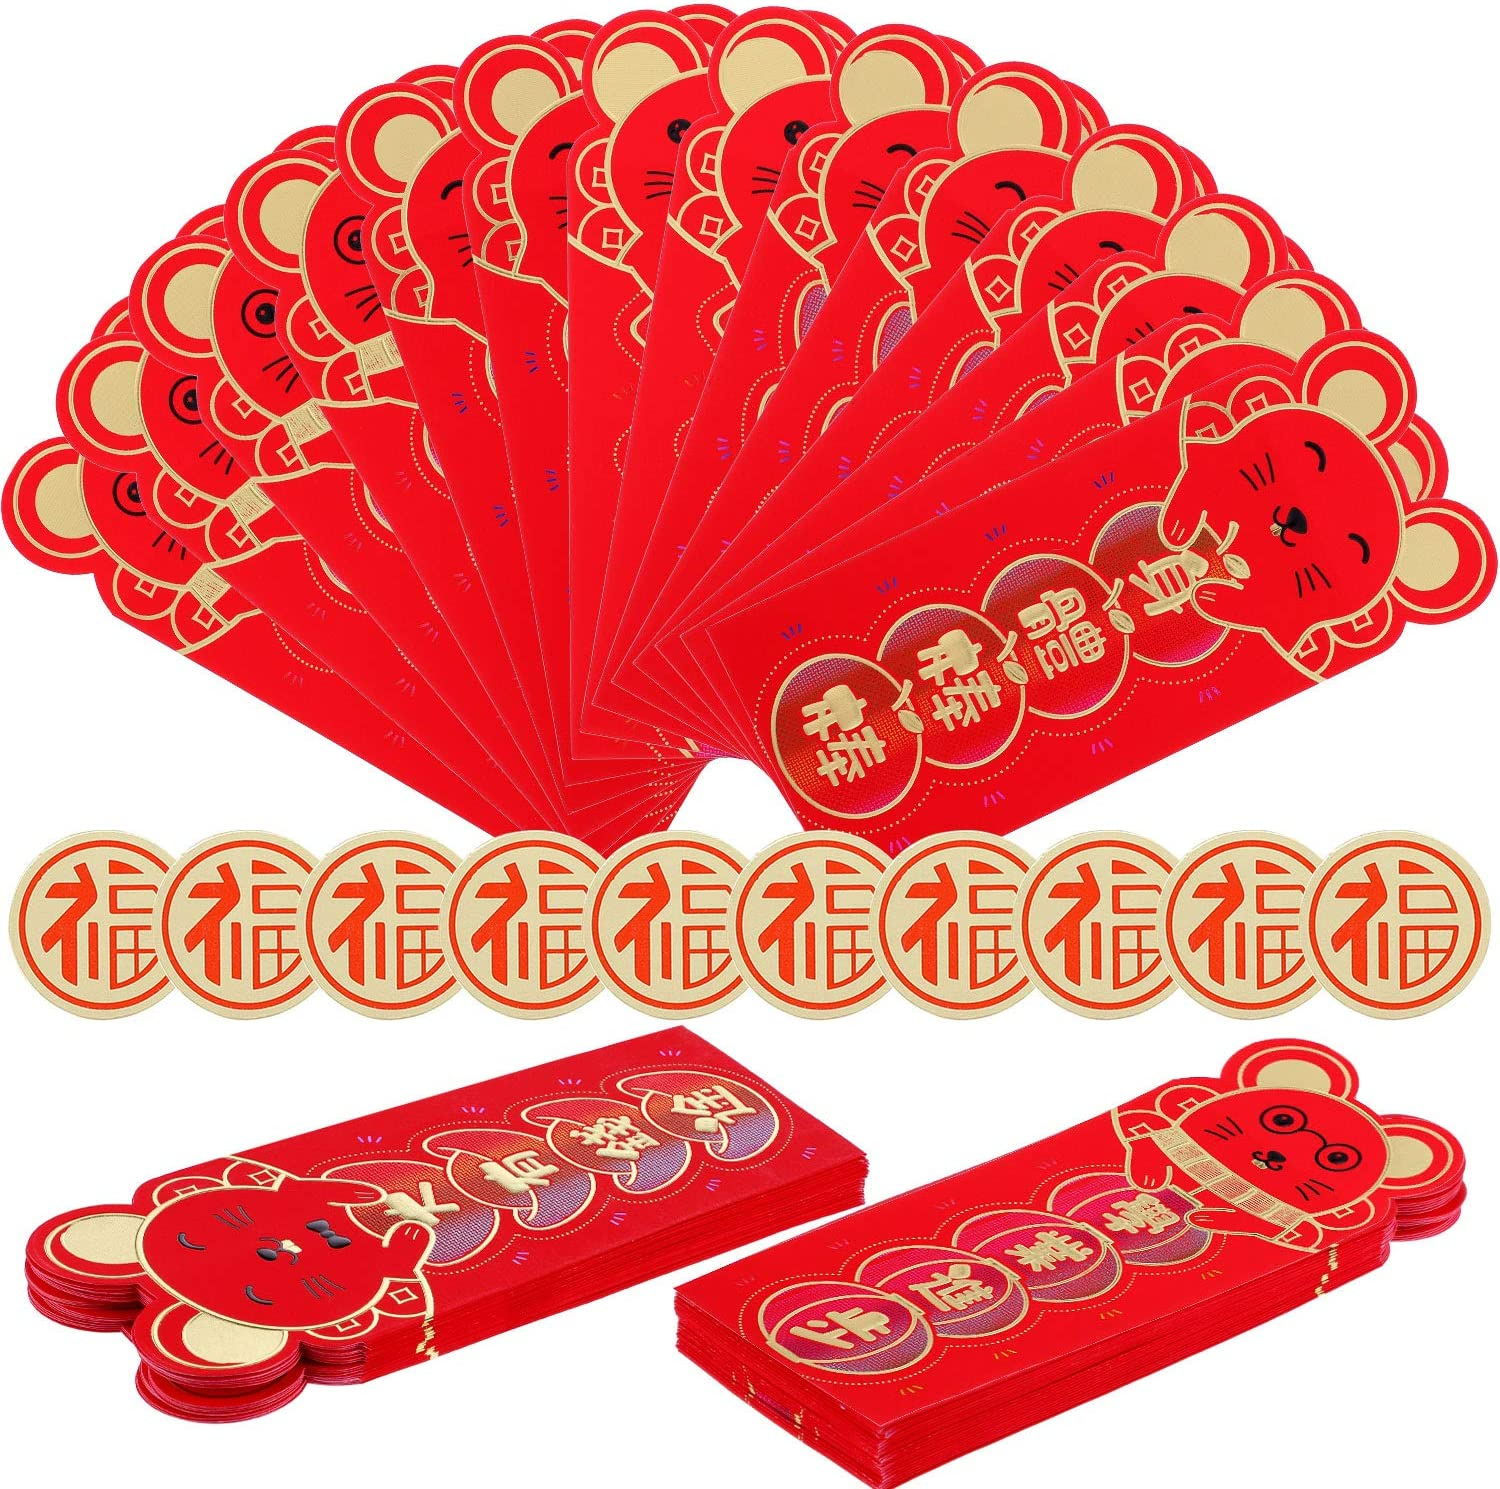 Amazon Com 32 Pieces Chinese New Year Red Envelopes Of 2020 Chinese Rat Year Hong Bao Lucky Money Pockets Or Spring Festival New Year Office Products